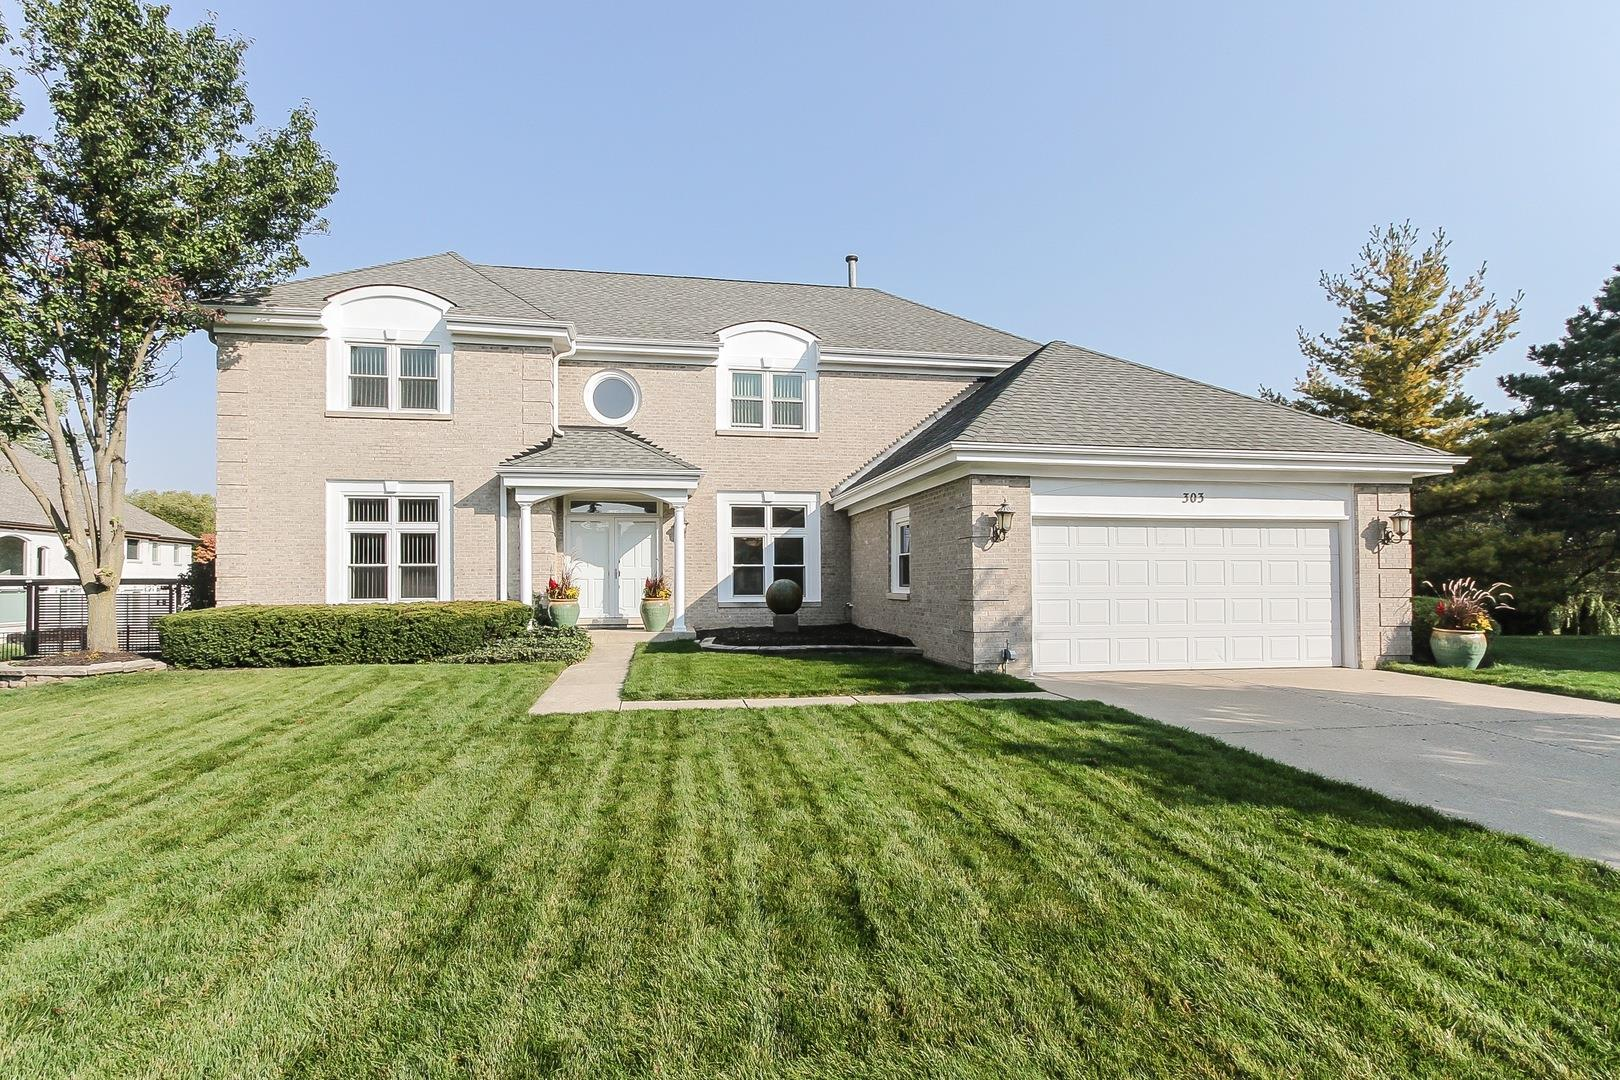 303 Needham Drive, Bloomingdale, IL 60108 - #: 10861044